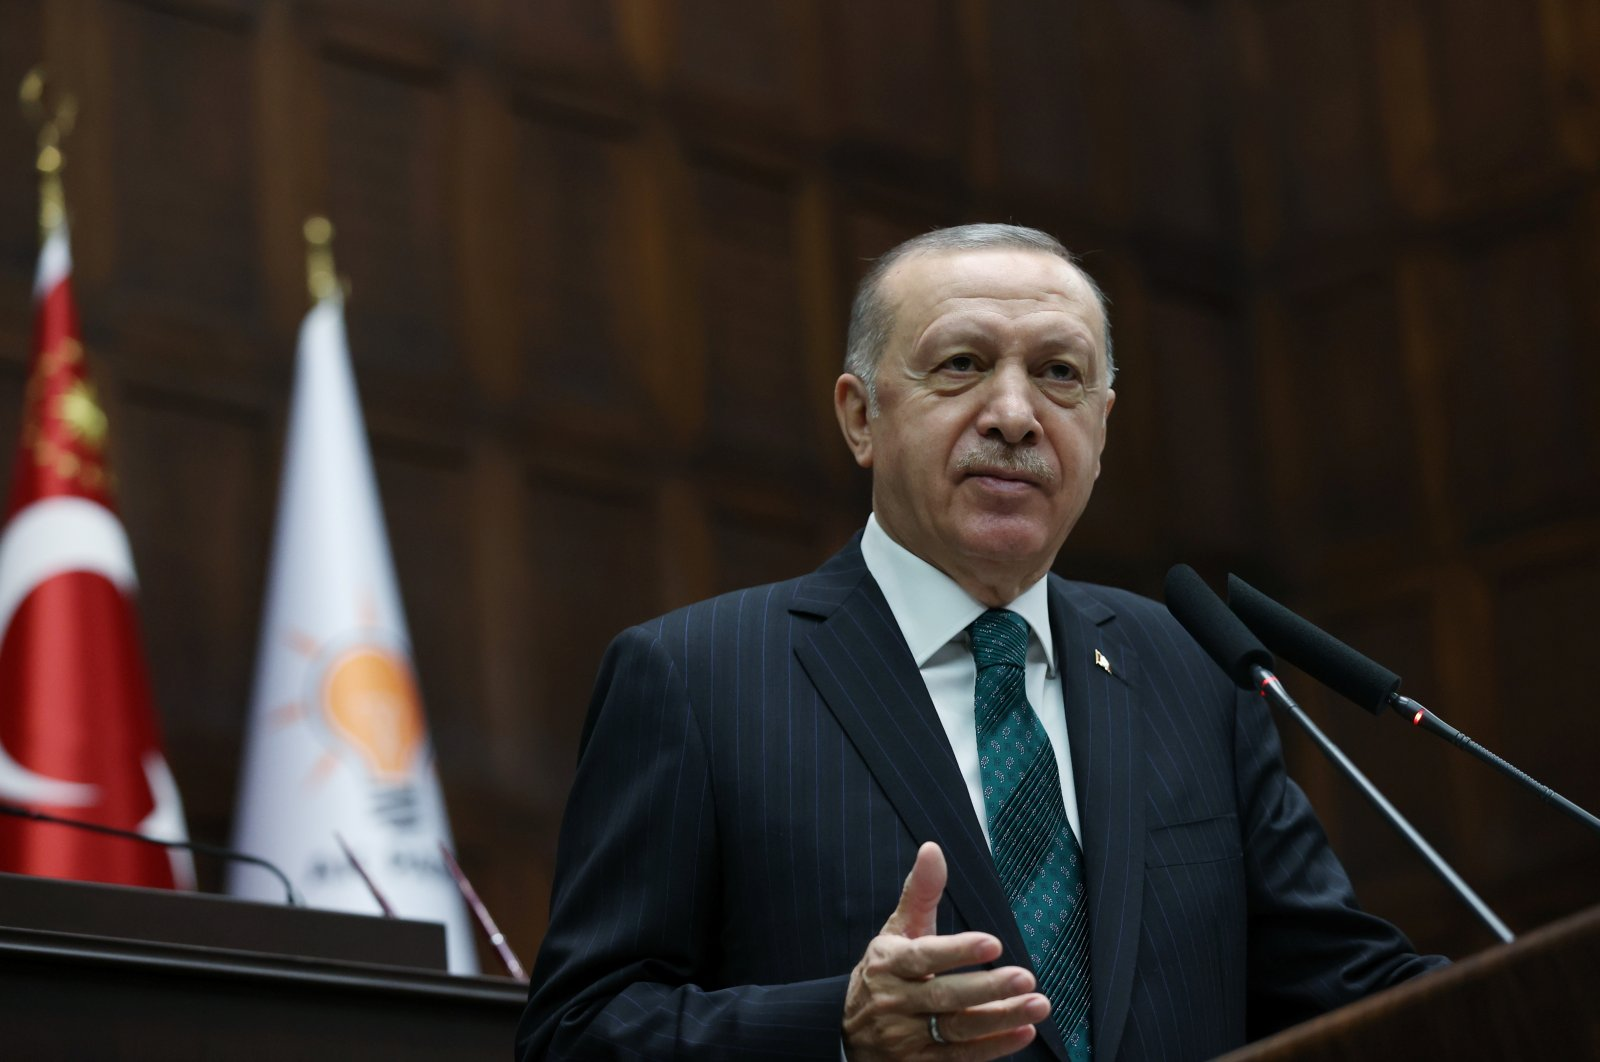 President Recep Tayyip Erdoğan addresses members of the Justice and Development Party (AK Party) during a meeting, Ankara, Turkey, Feb. 10, 2021. (Reuters Photo)